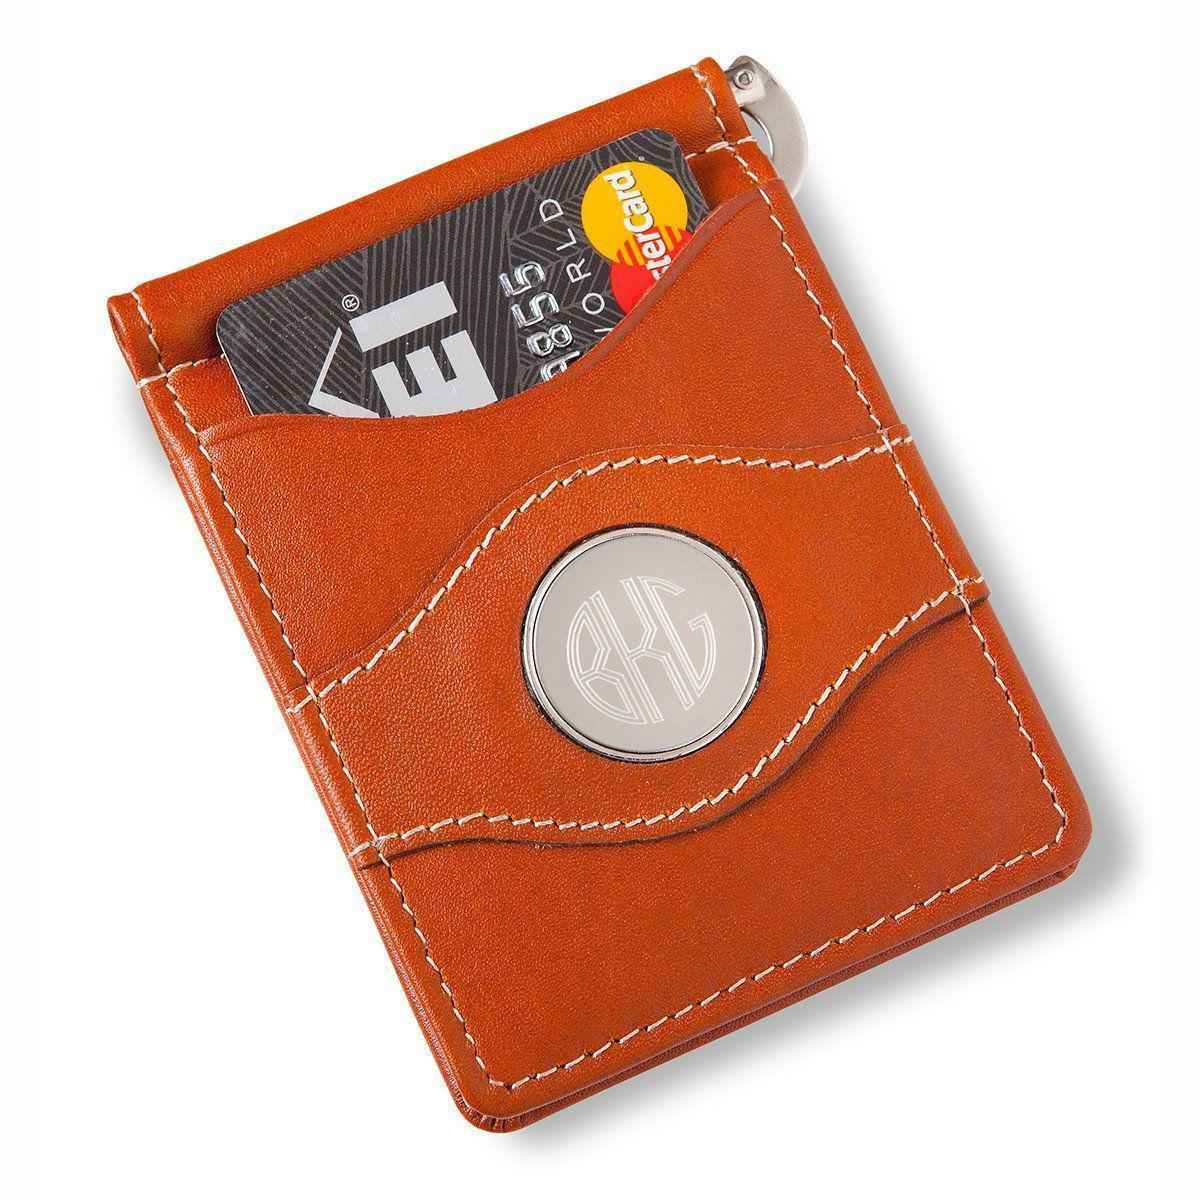 Personalized-Metal-Pin-Money-Clip-and-Wallet